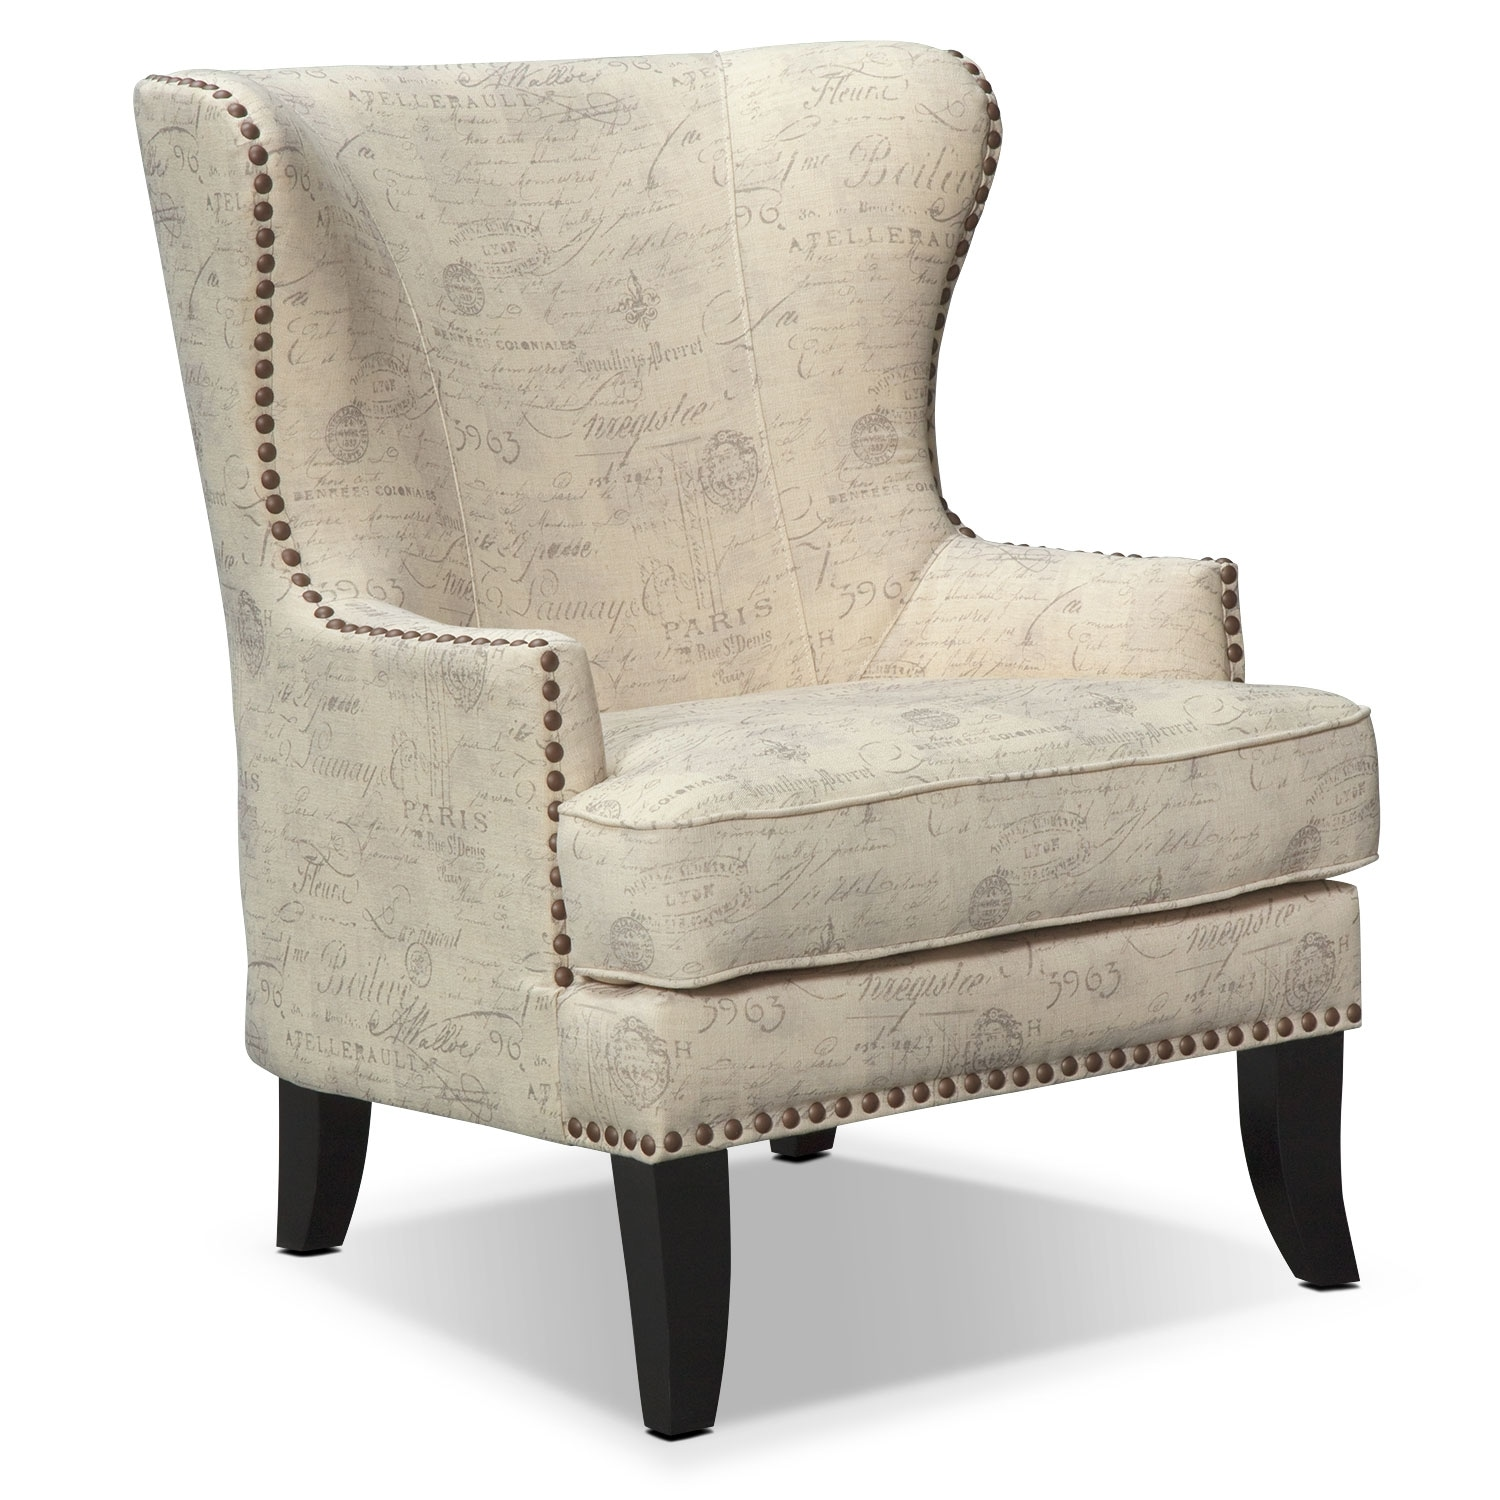 Marseille accent chair cream and black american for Best living room chairs